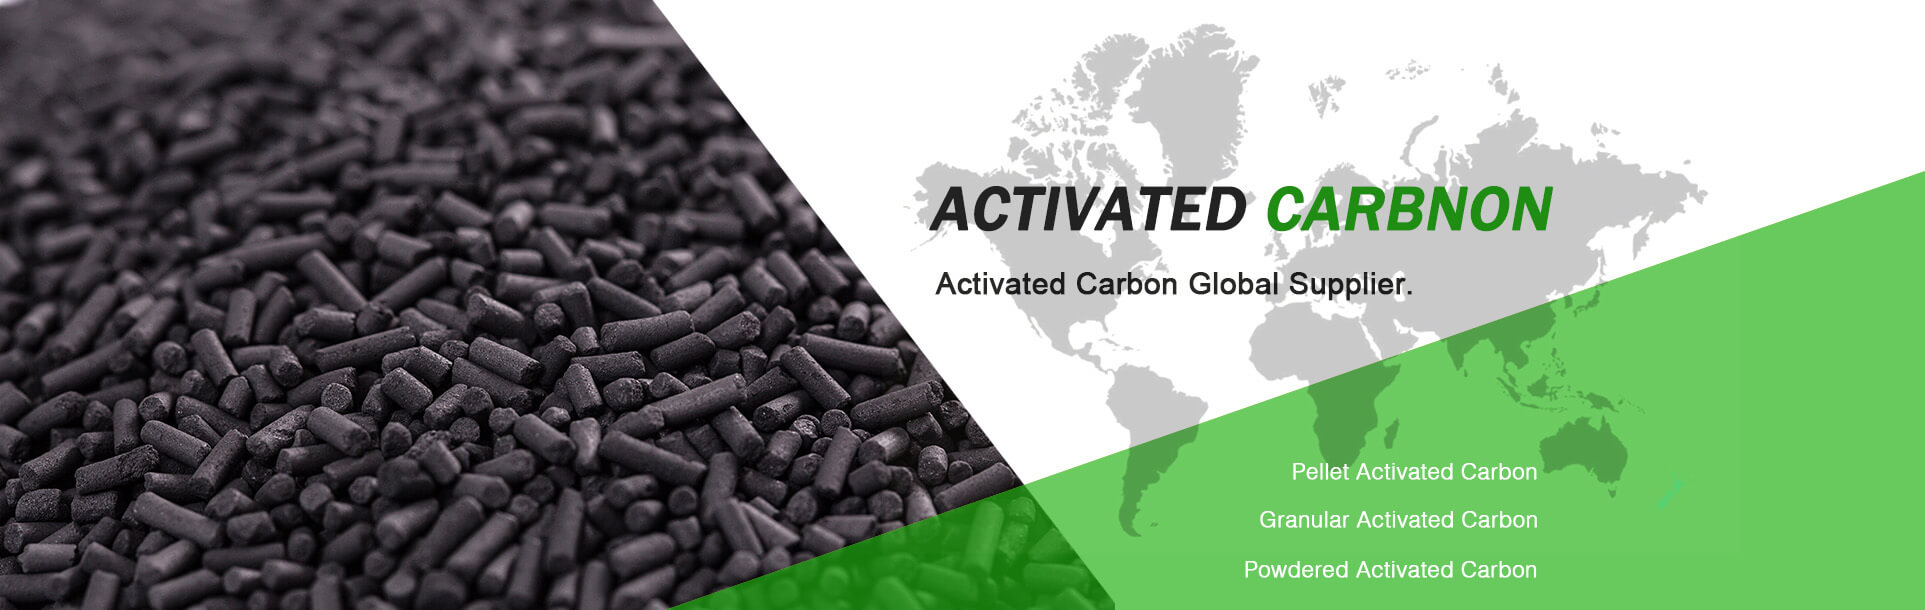 Coconut shell pellet activated carbon